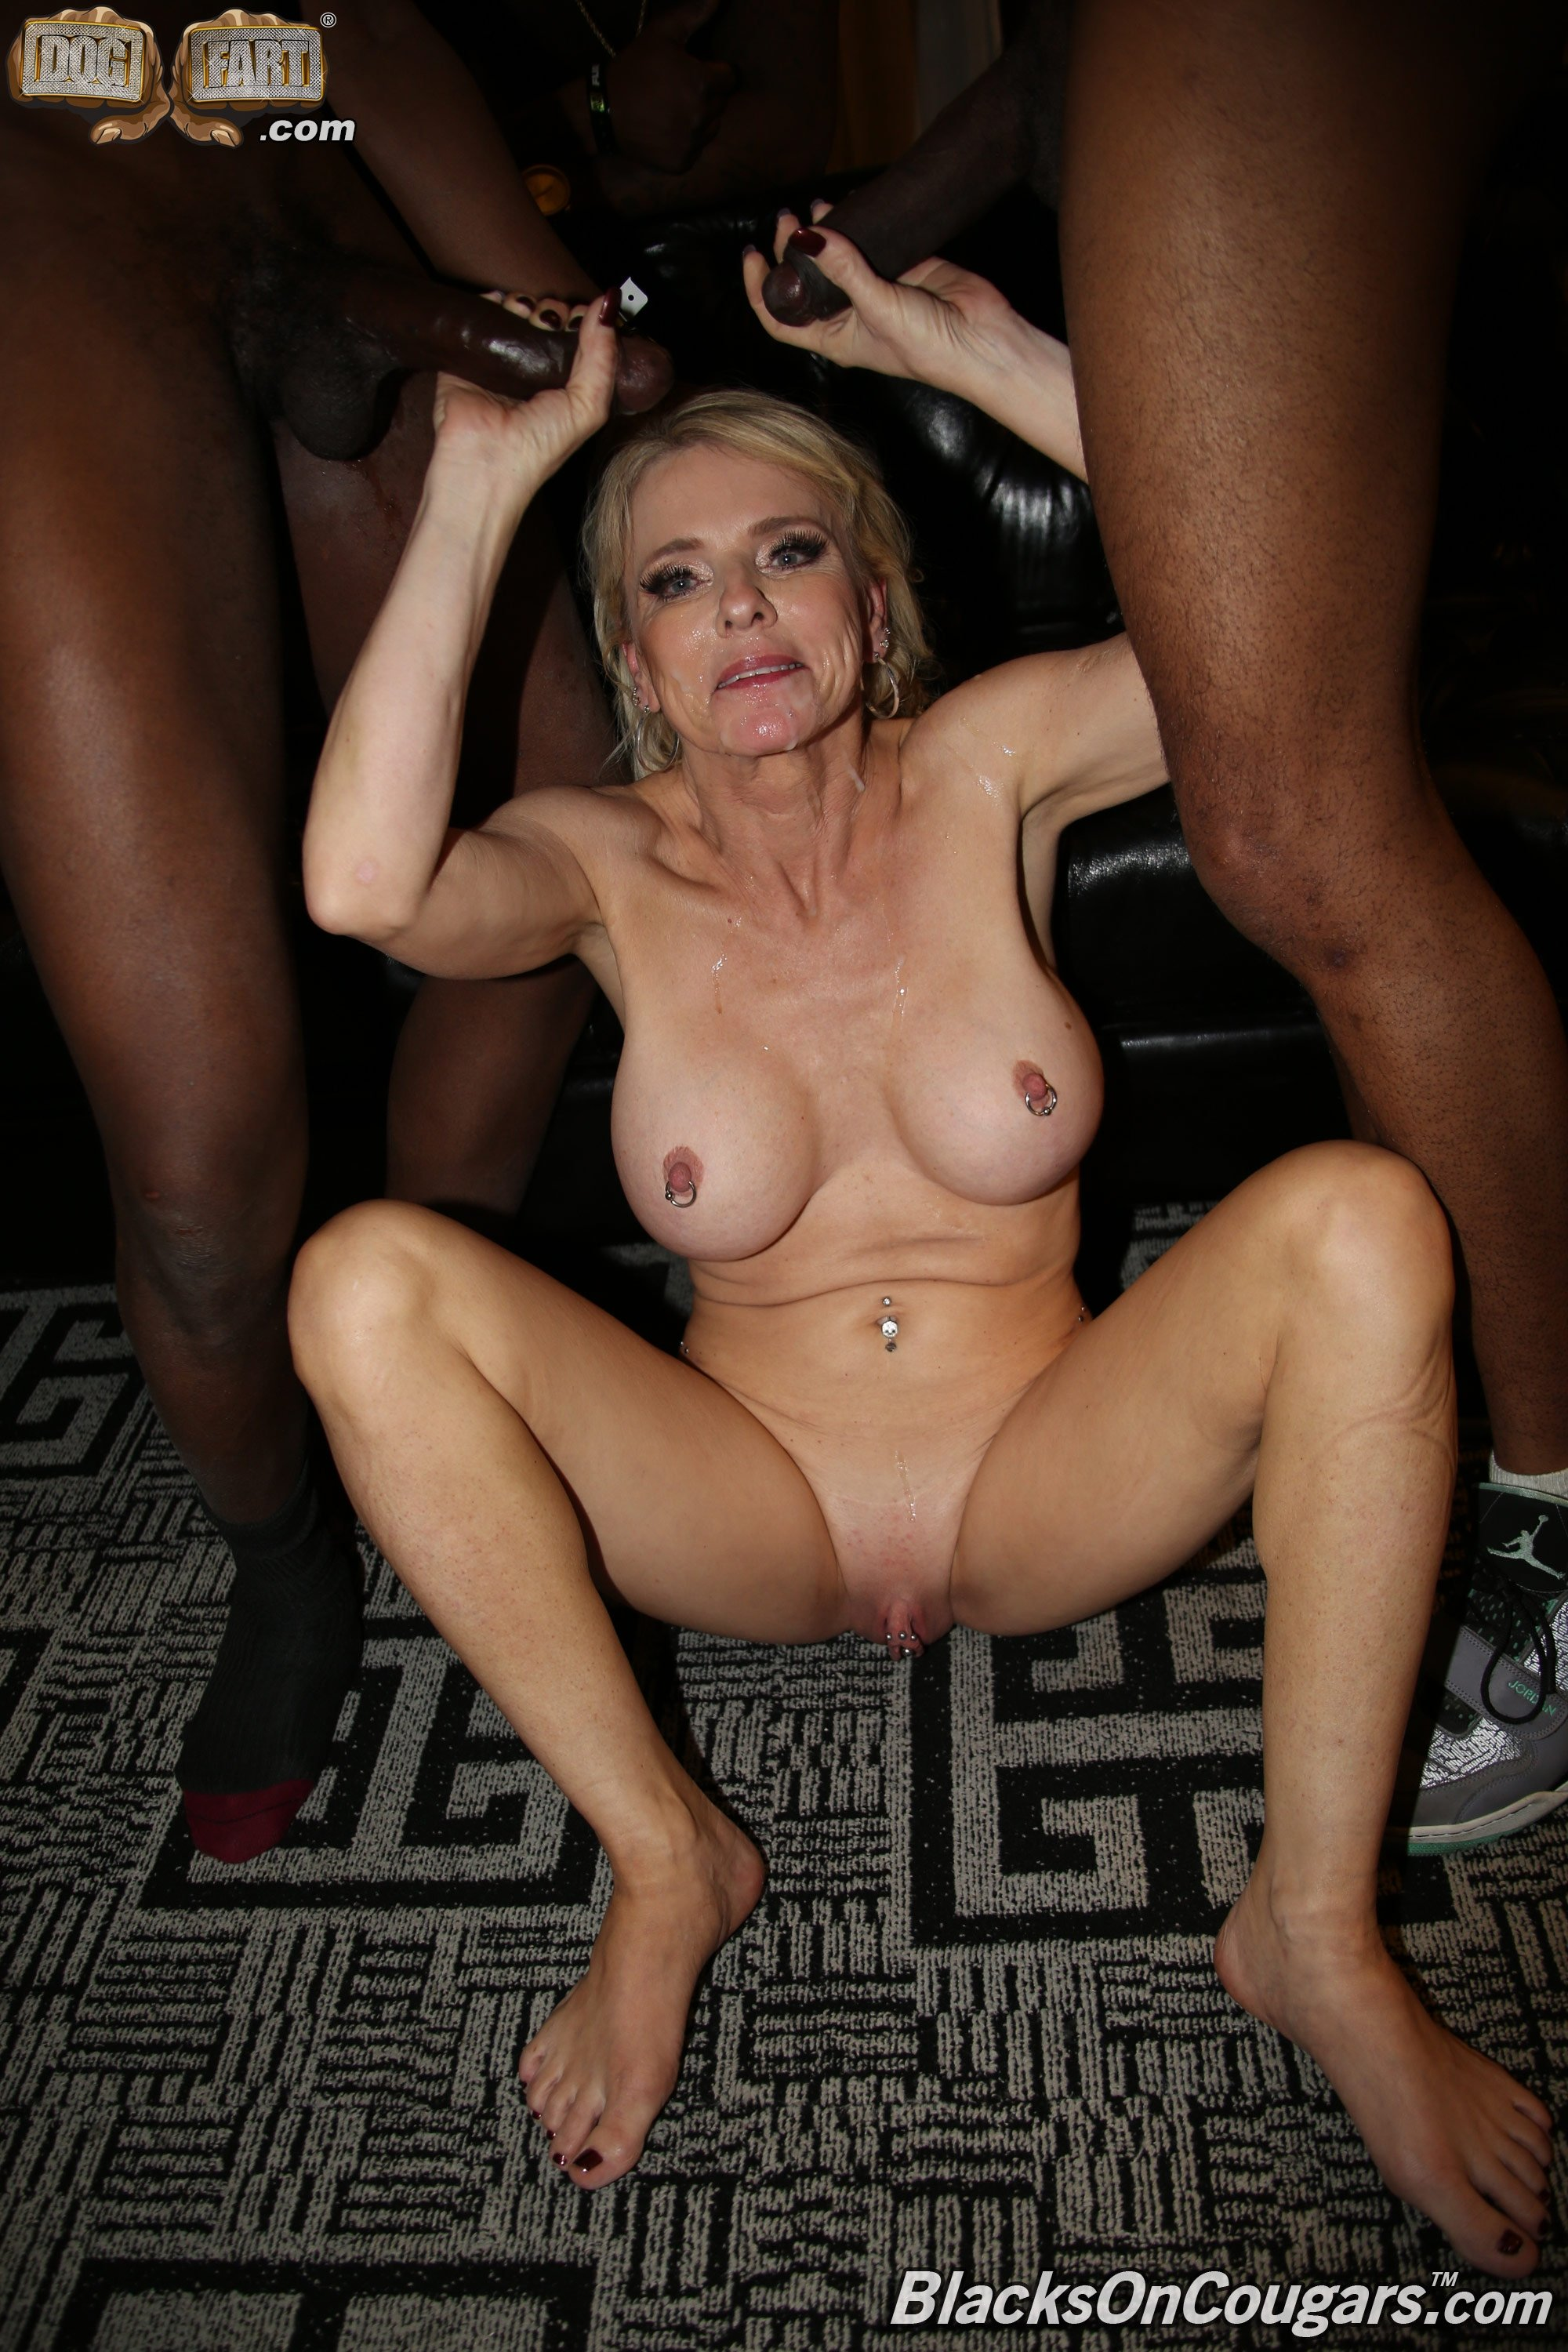 Husband porn and blacked